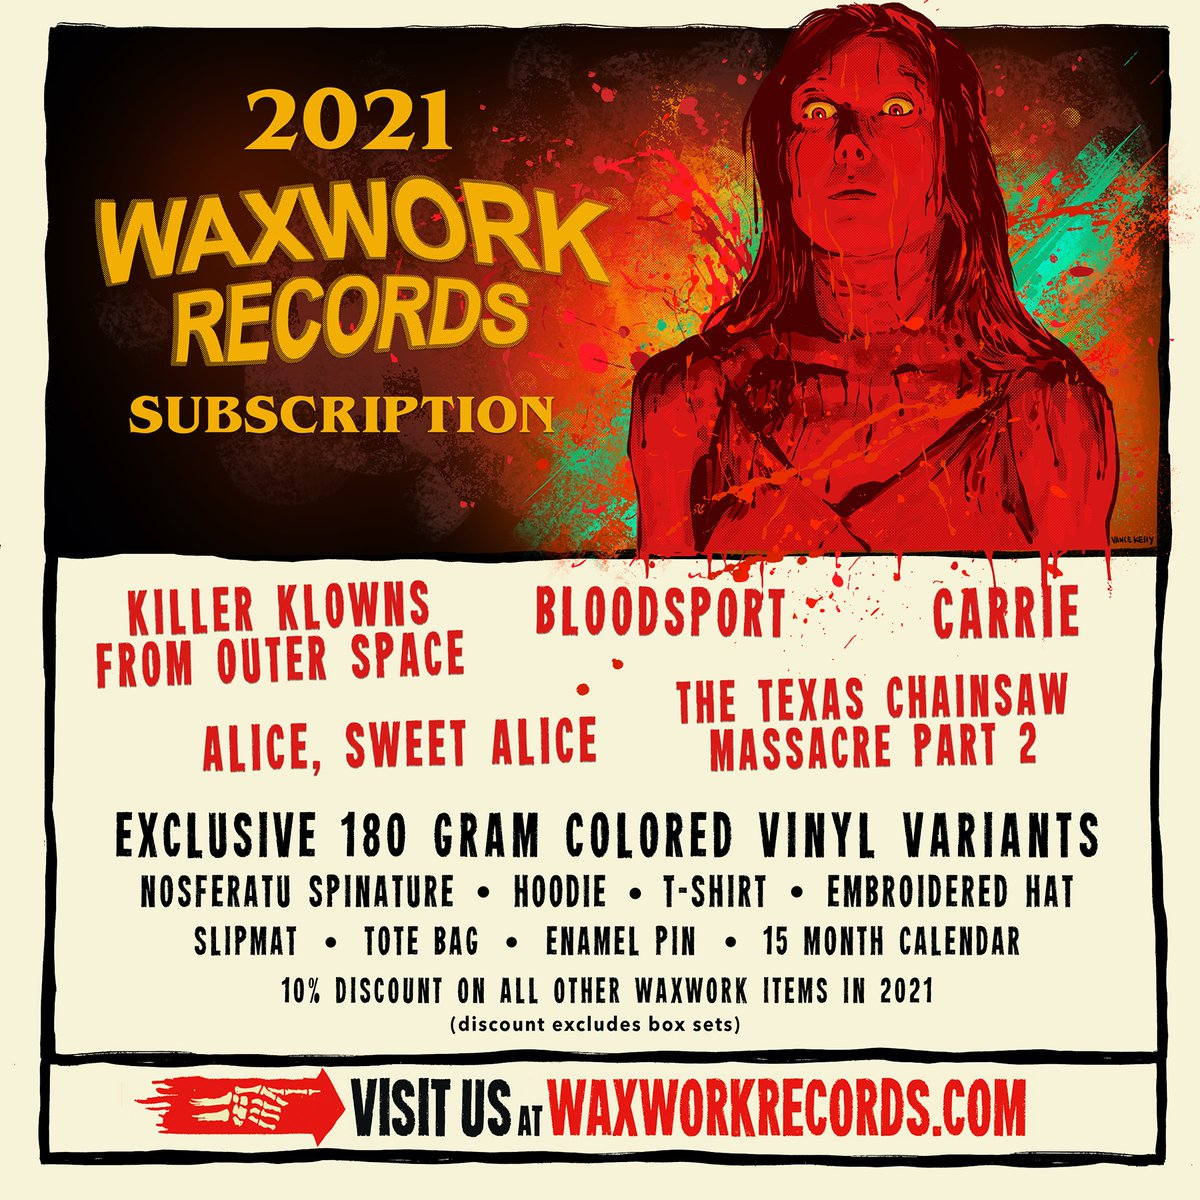 The window to join the 2021 Waxwork Records Subscription closes TOMORROW! Don't miss out on joining us for a year of exclusive colored vinyl, soundtracks, discounts, apparel, and much more!